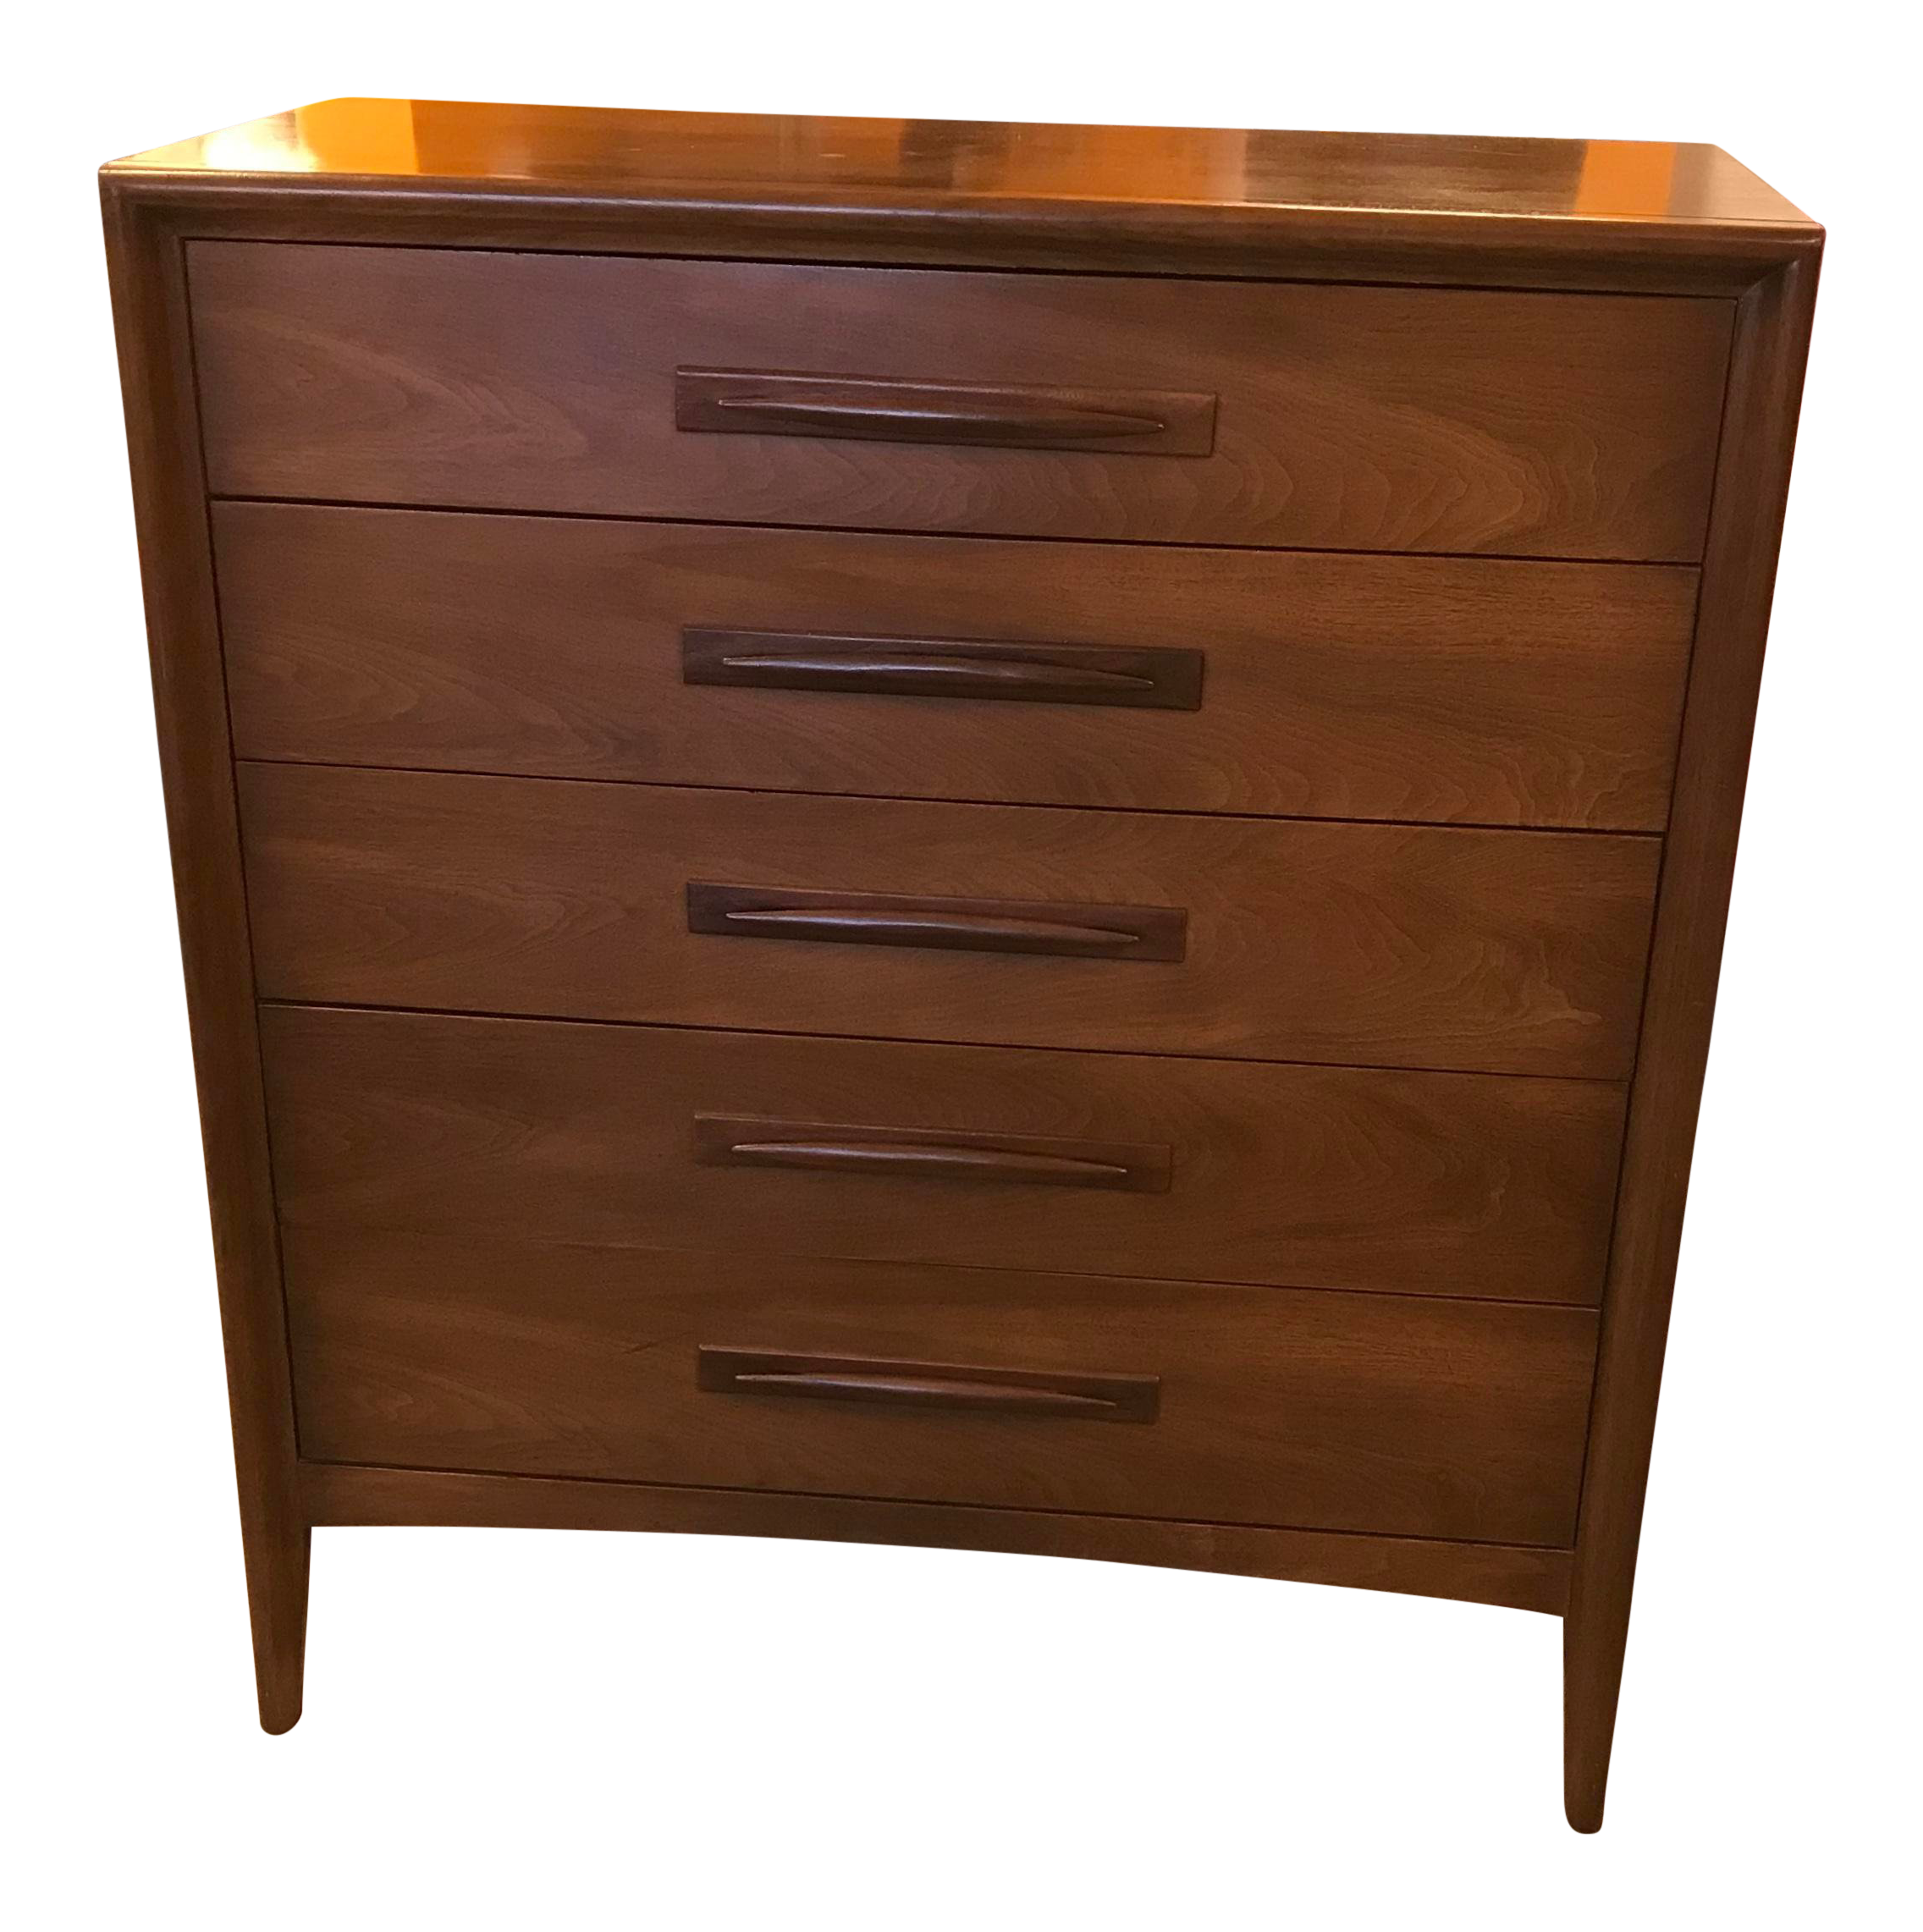 Broyhill Premier, Chest Of Drawers From The Emphasis Collection